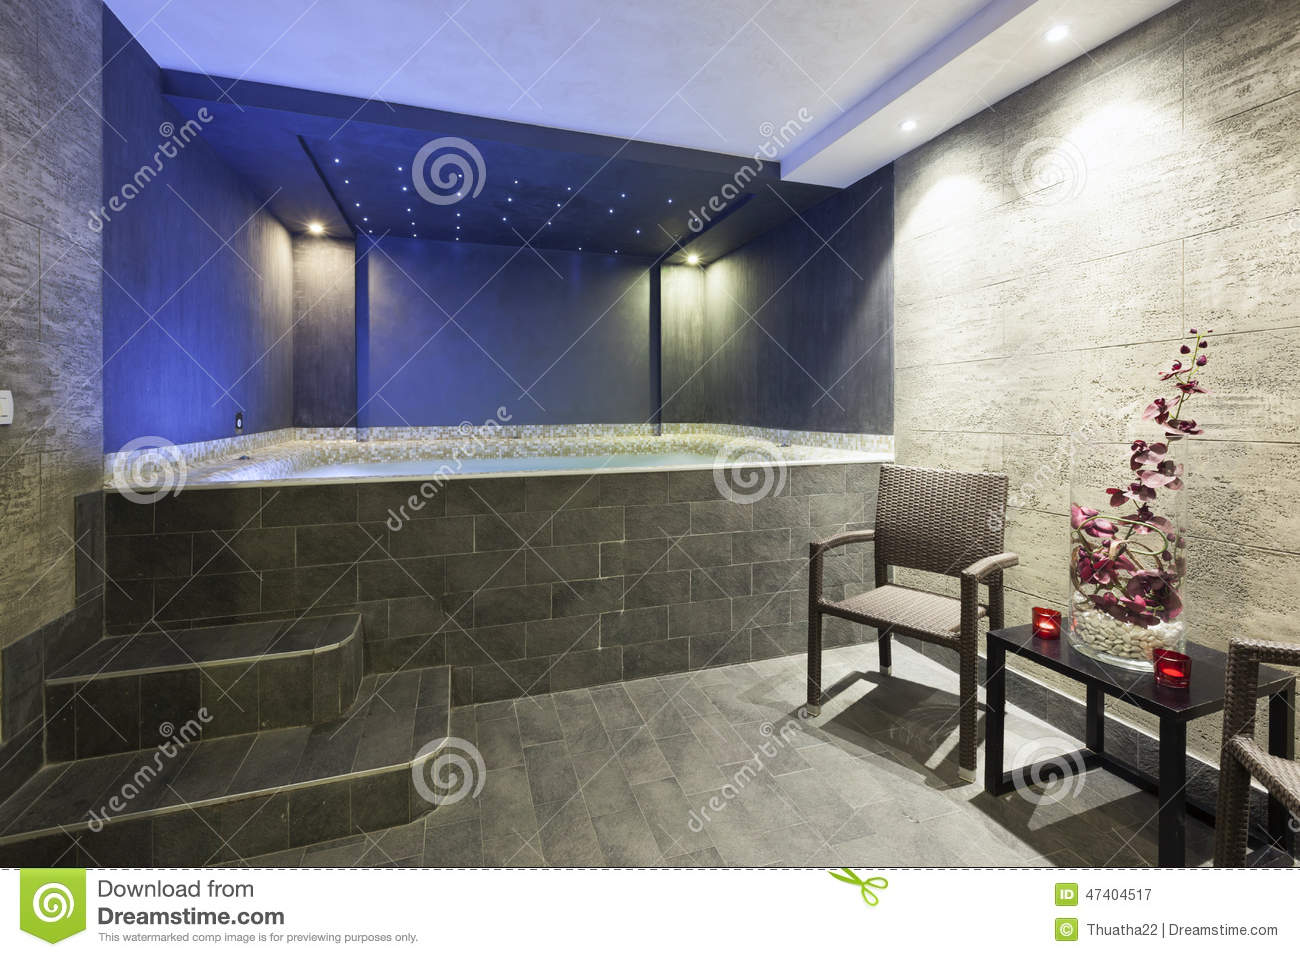 Interior of a modern hotel bathroom jacuzzi royalty free - Jacuzzi para interior ...